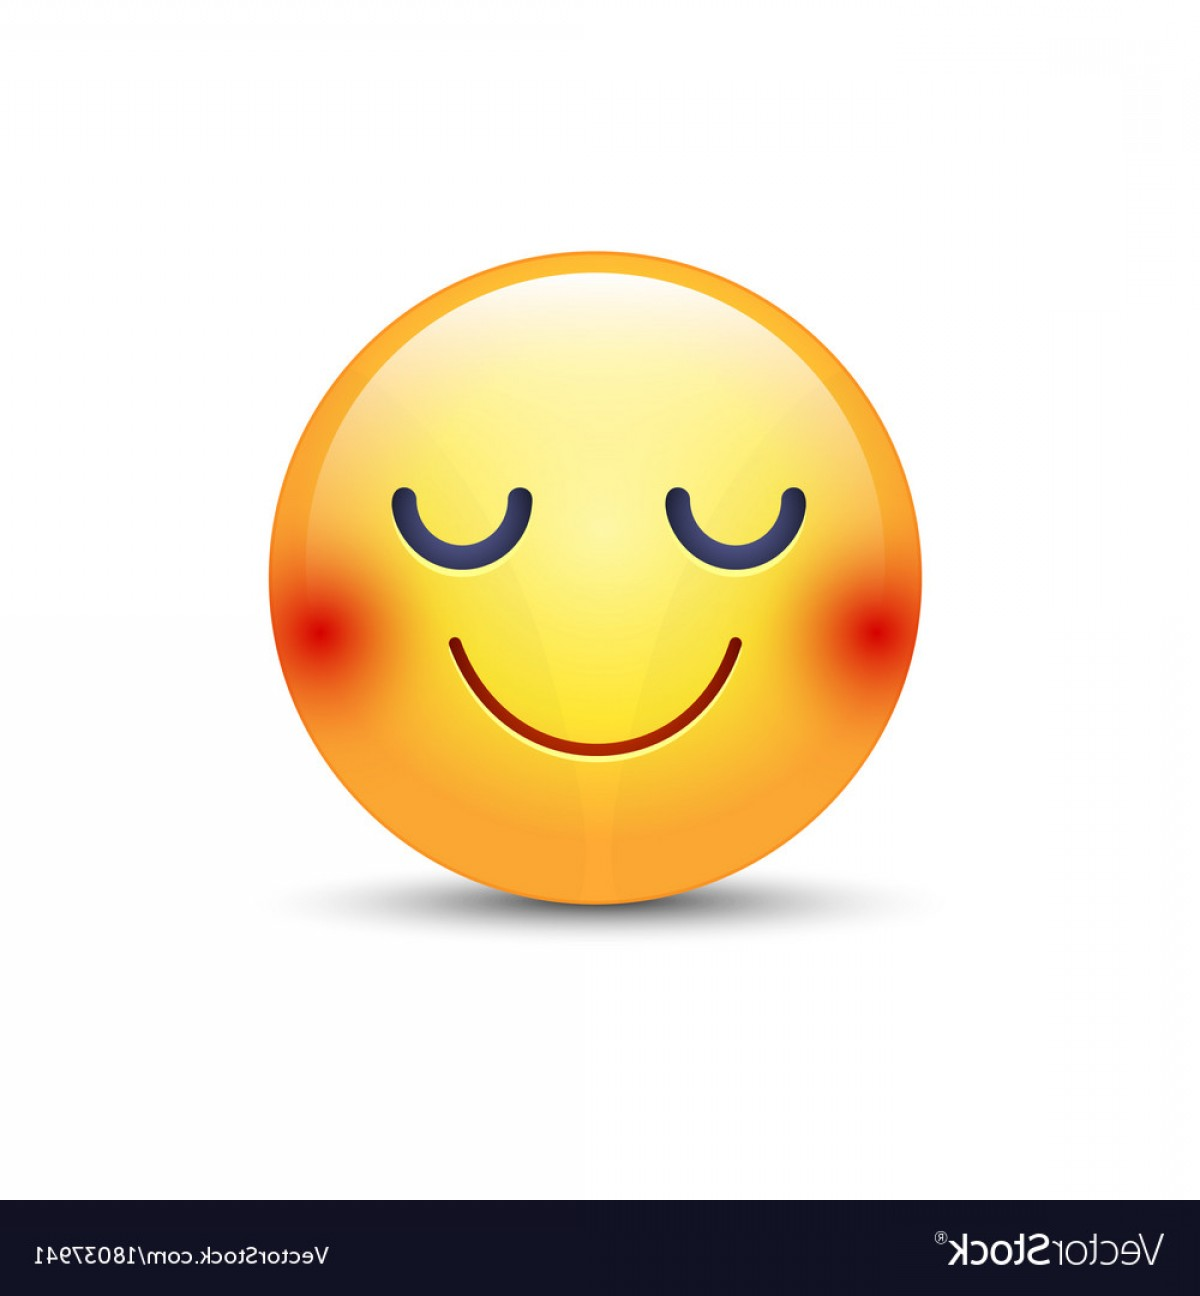 Excited Face Emoji Vector: Happy Cartoon Emoji Face With Closed Eyes Smiling Vector